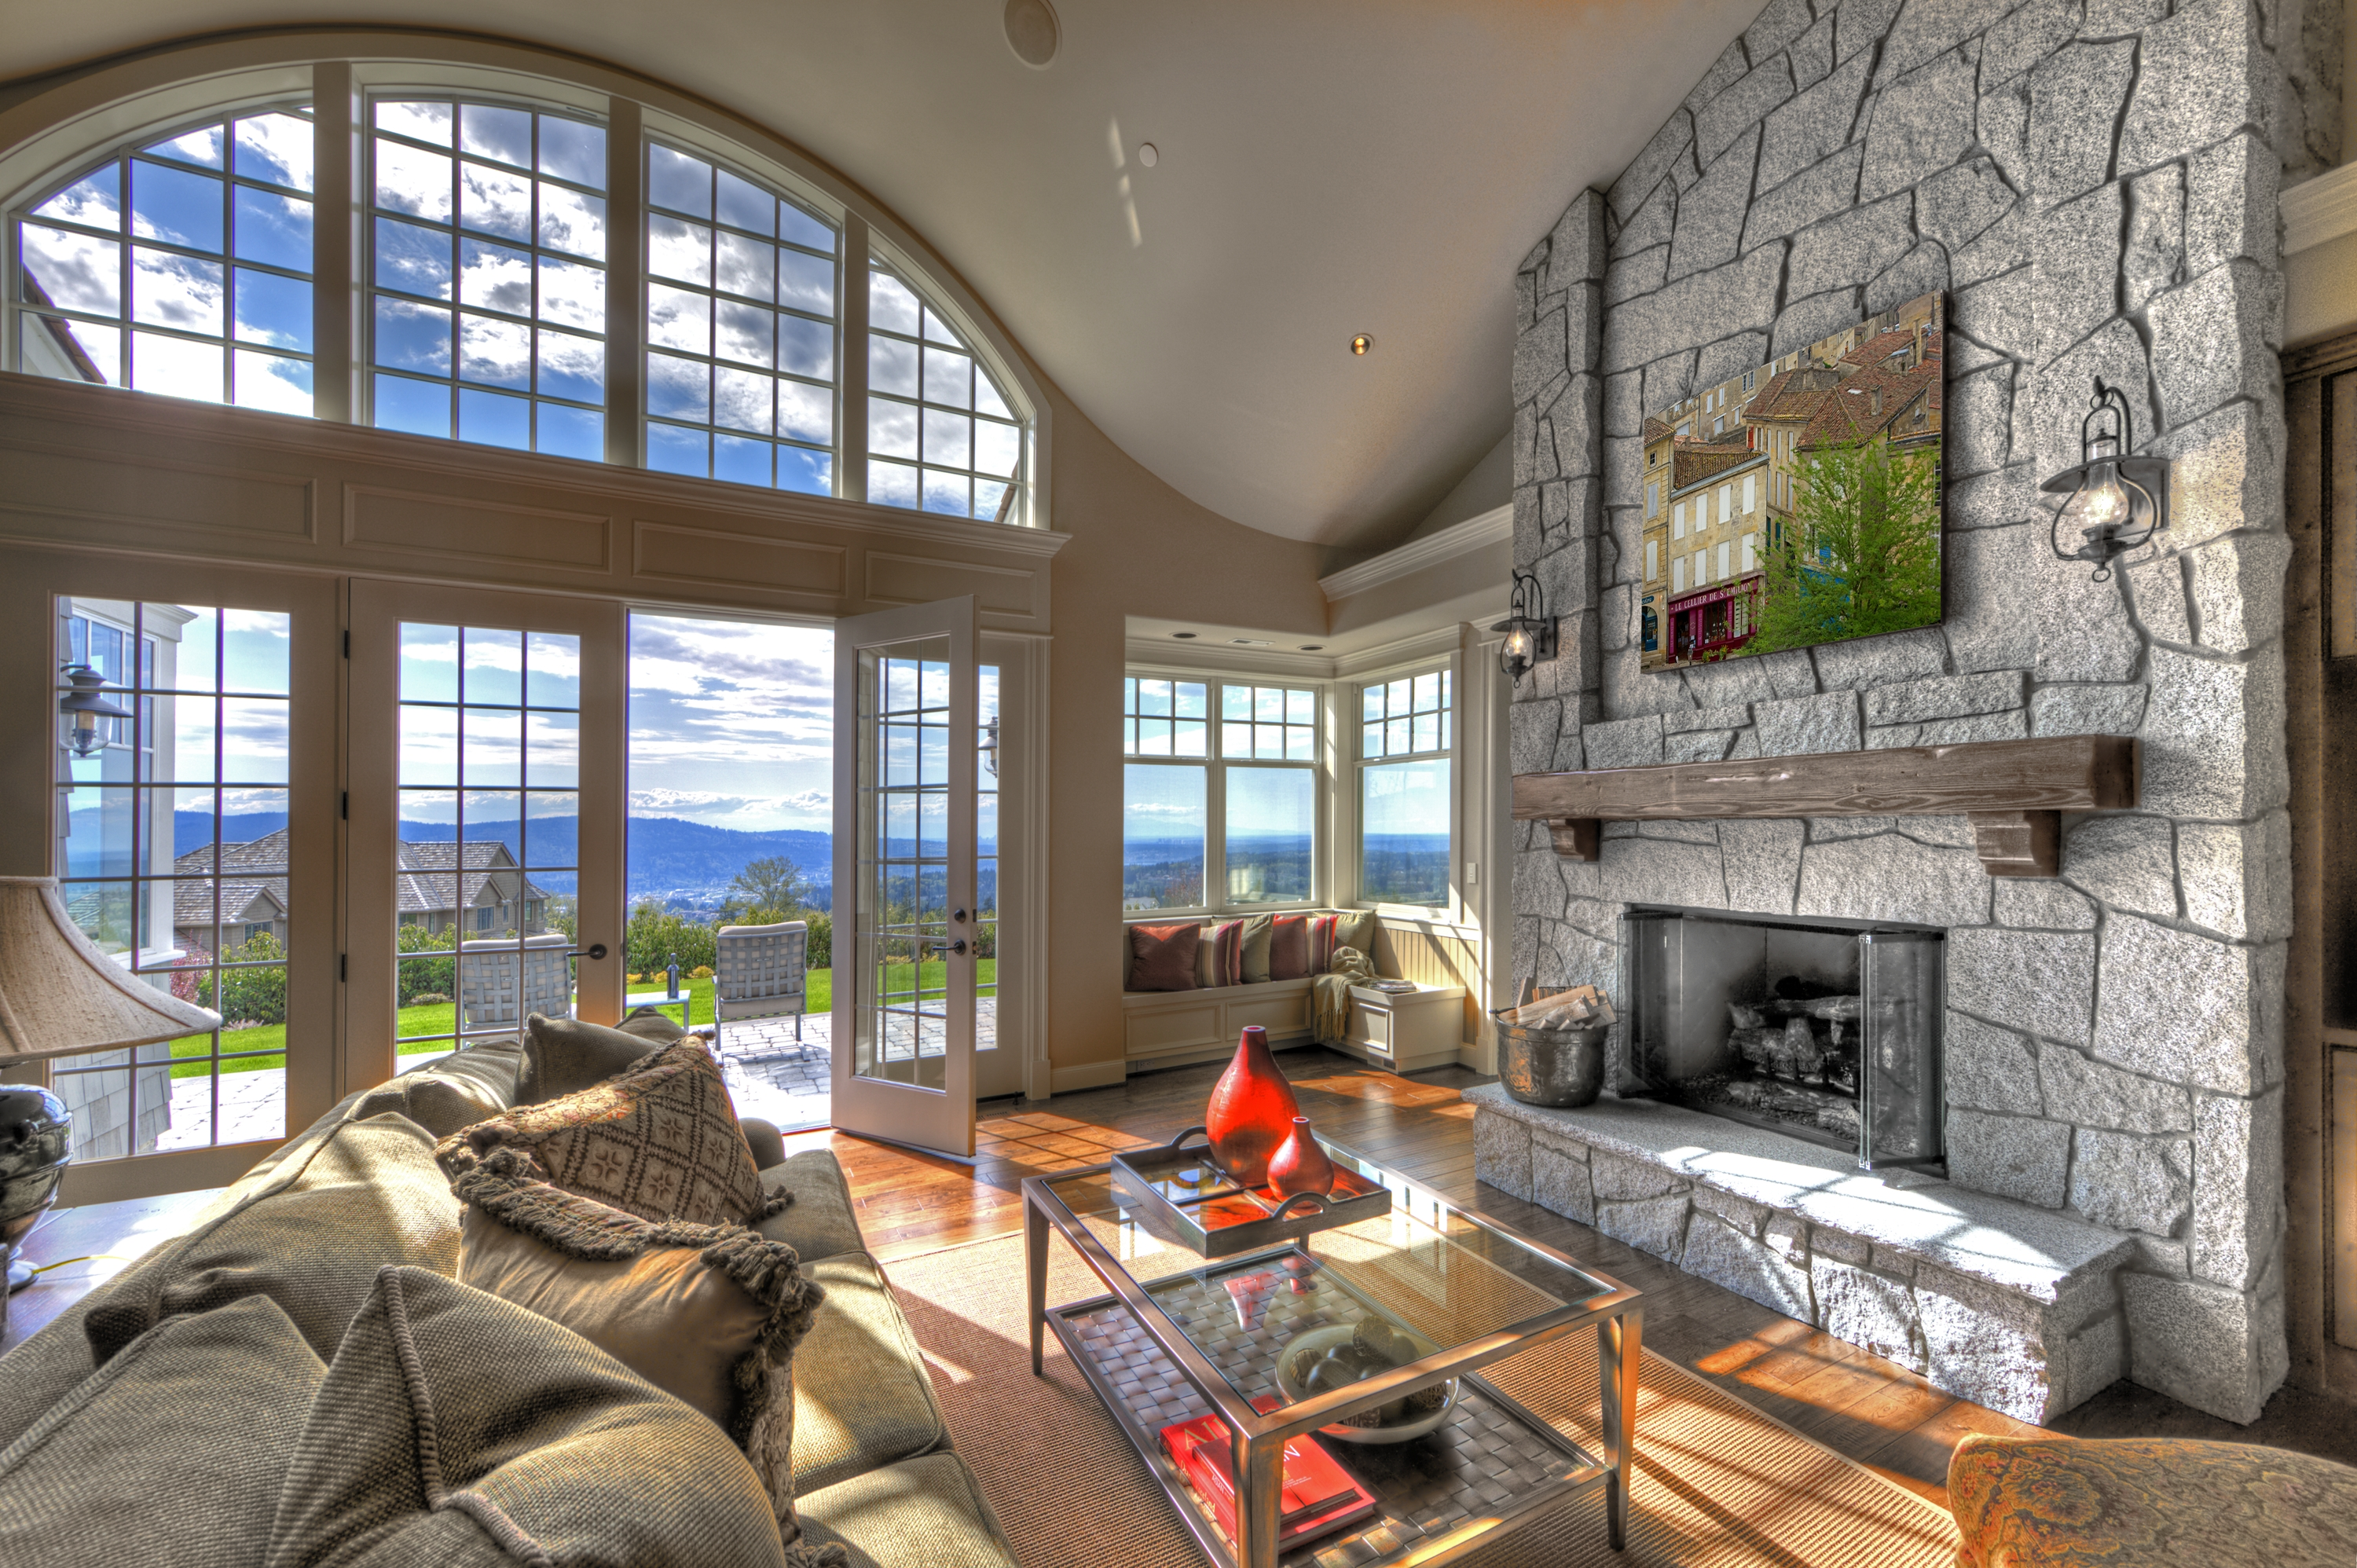 http://www.heritagehomedesign.ca/wp-content/uploads/2014/03/Cape-Cod-living-room.jpg